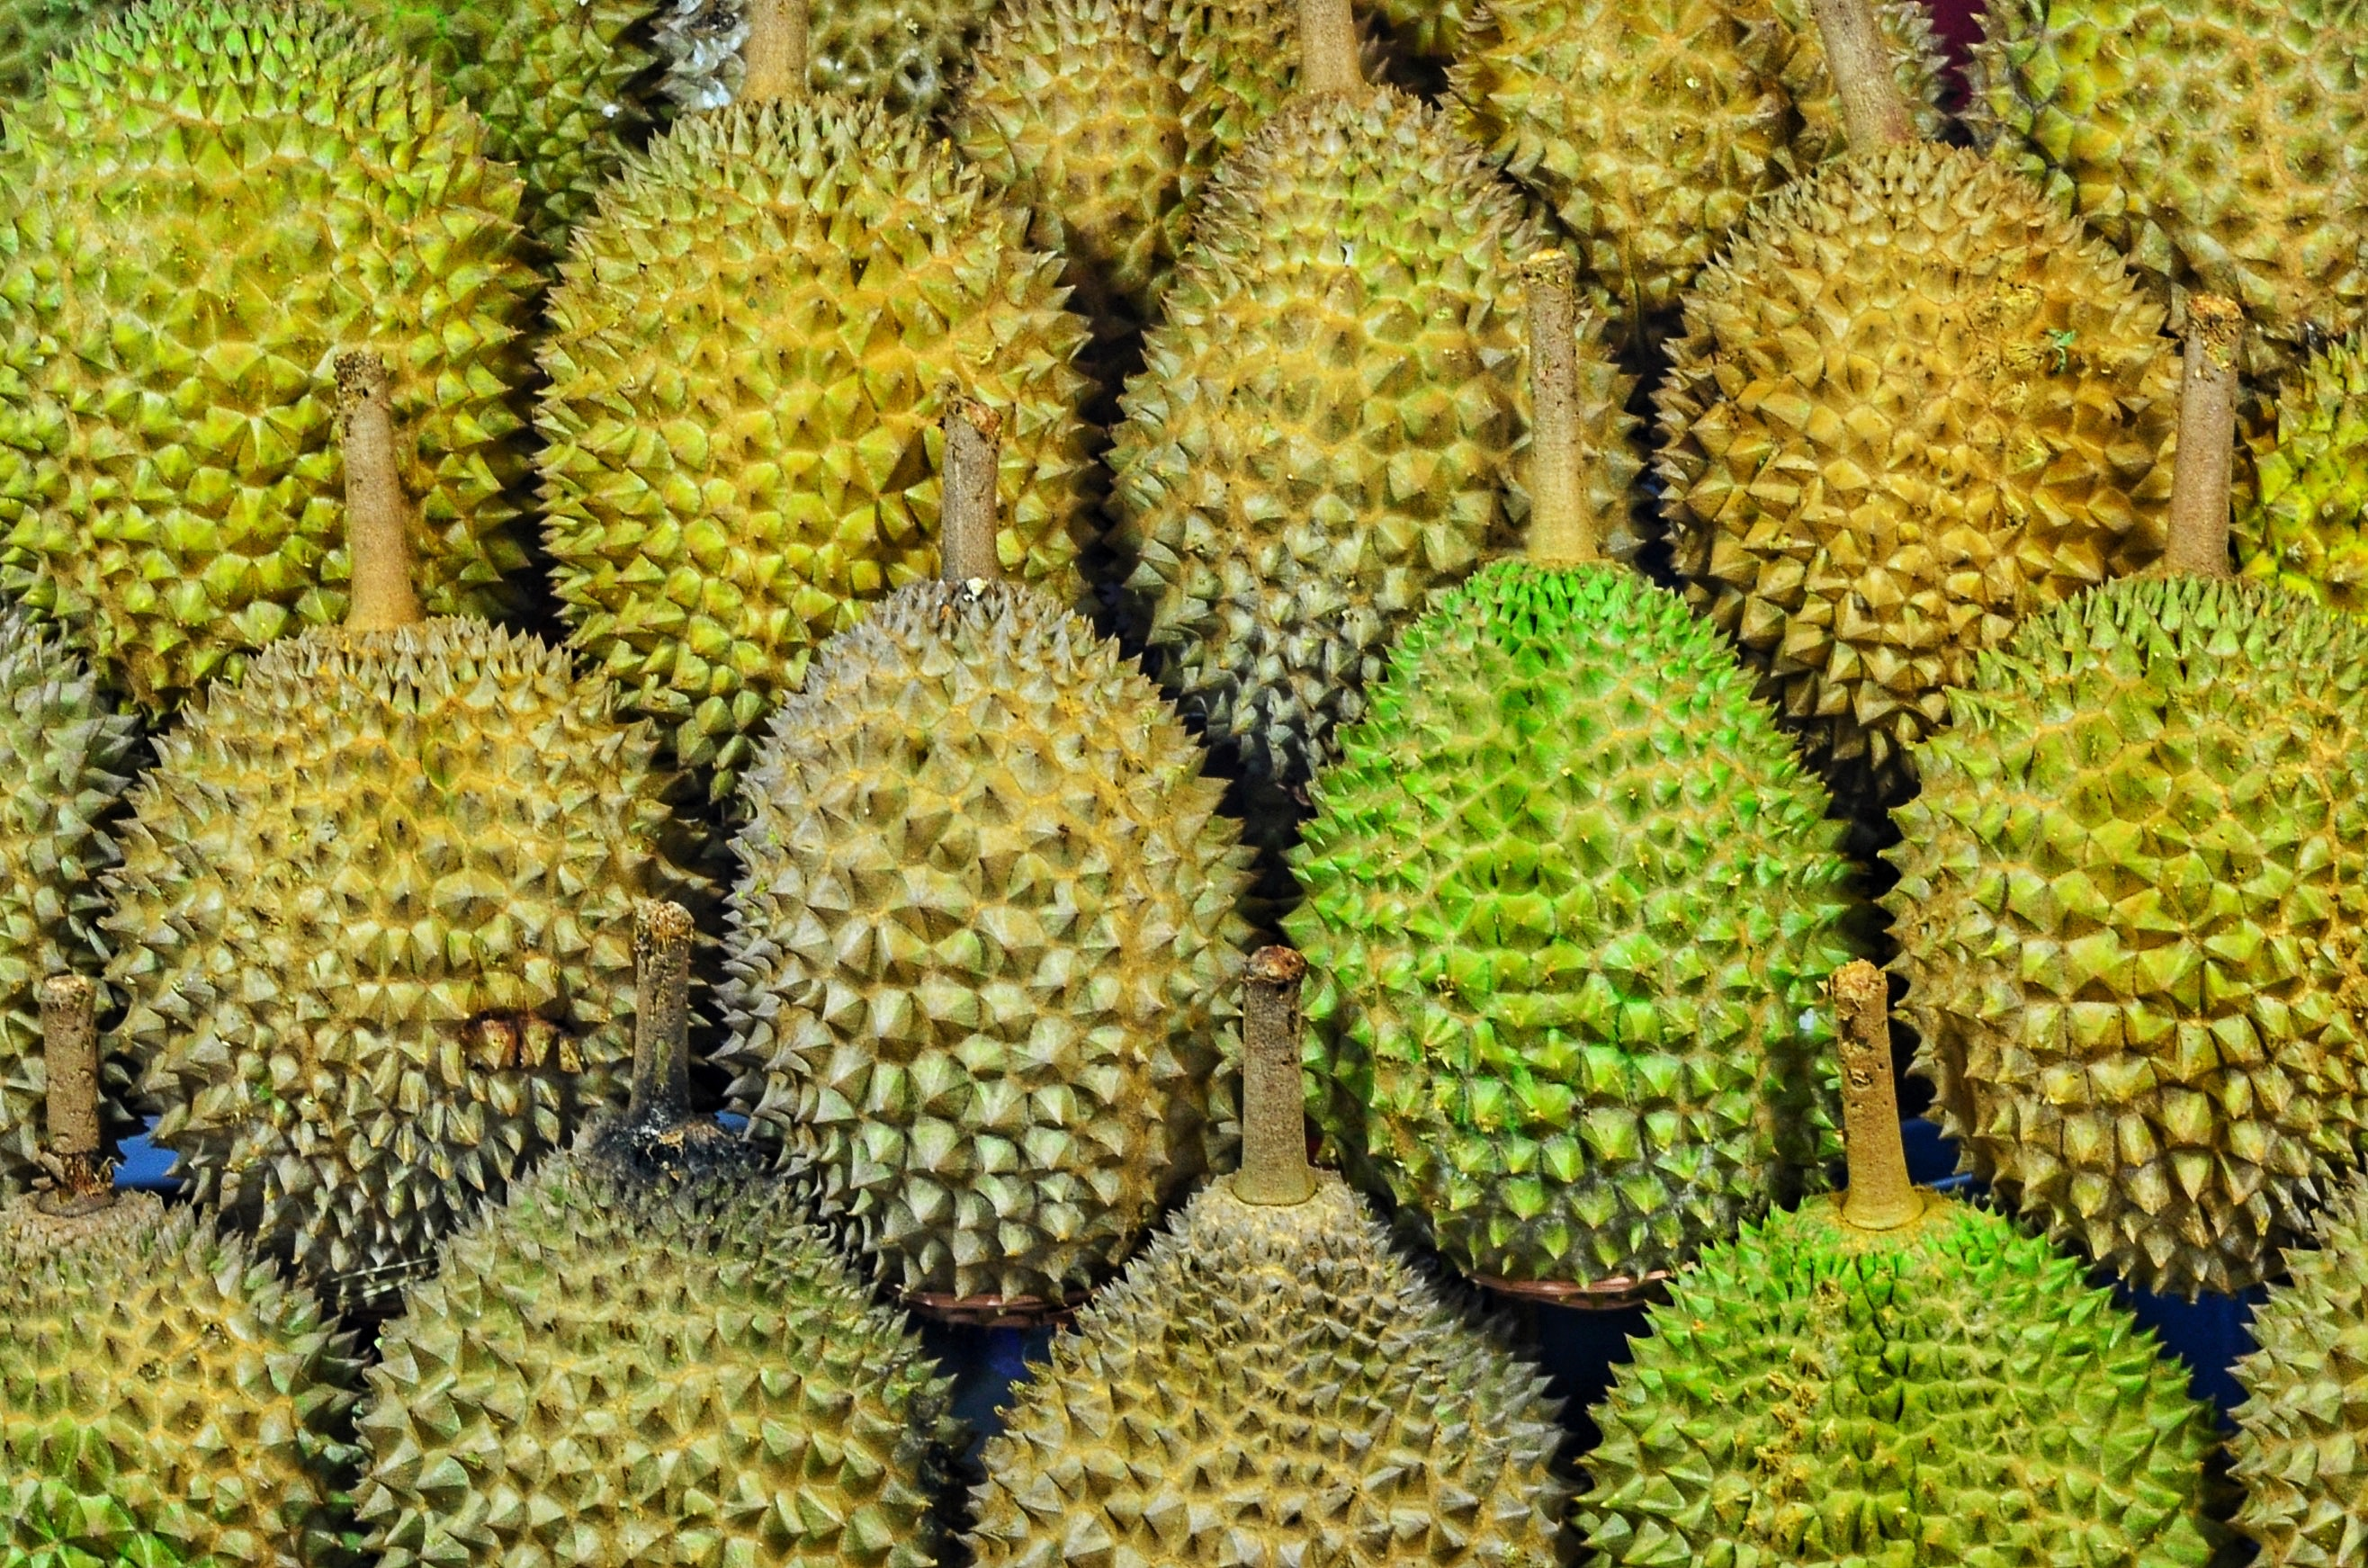 Johor — Seeking a Big Hit in a New Breed of Durian